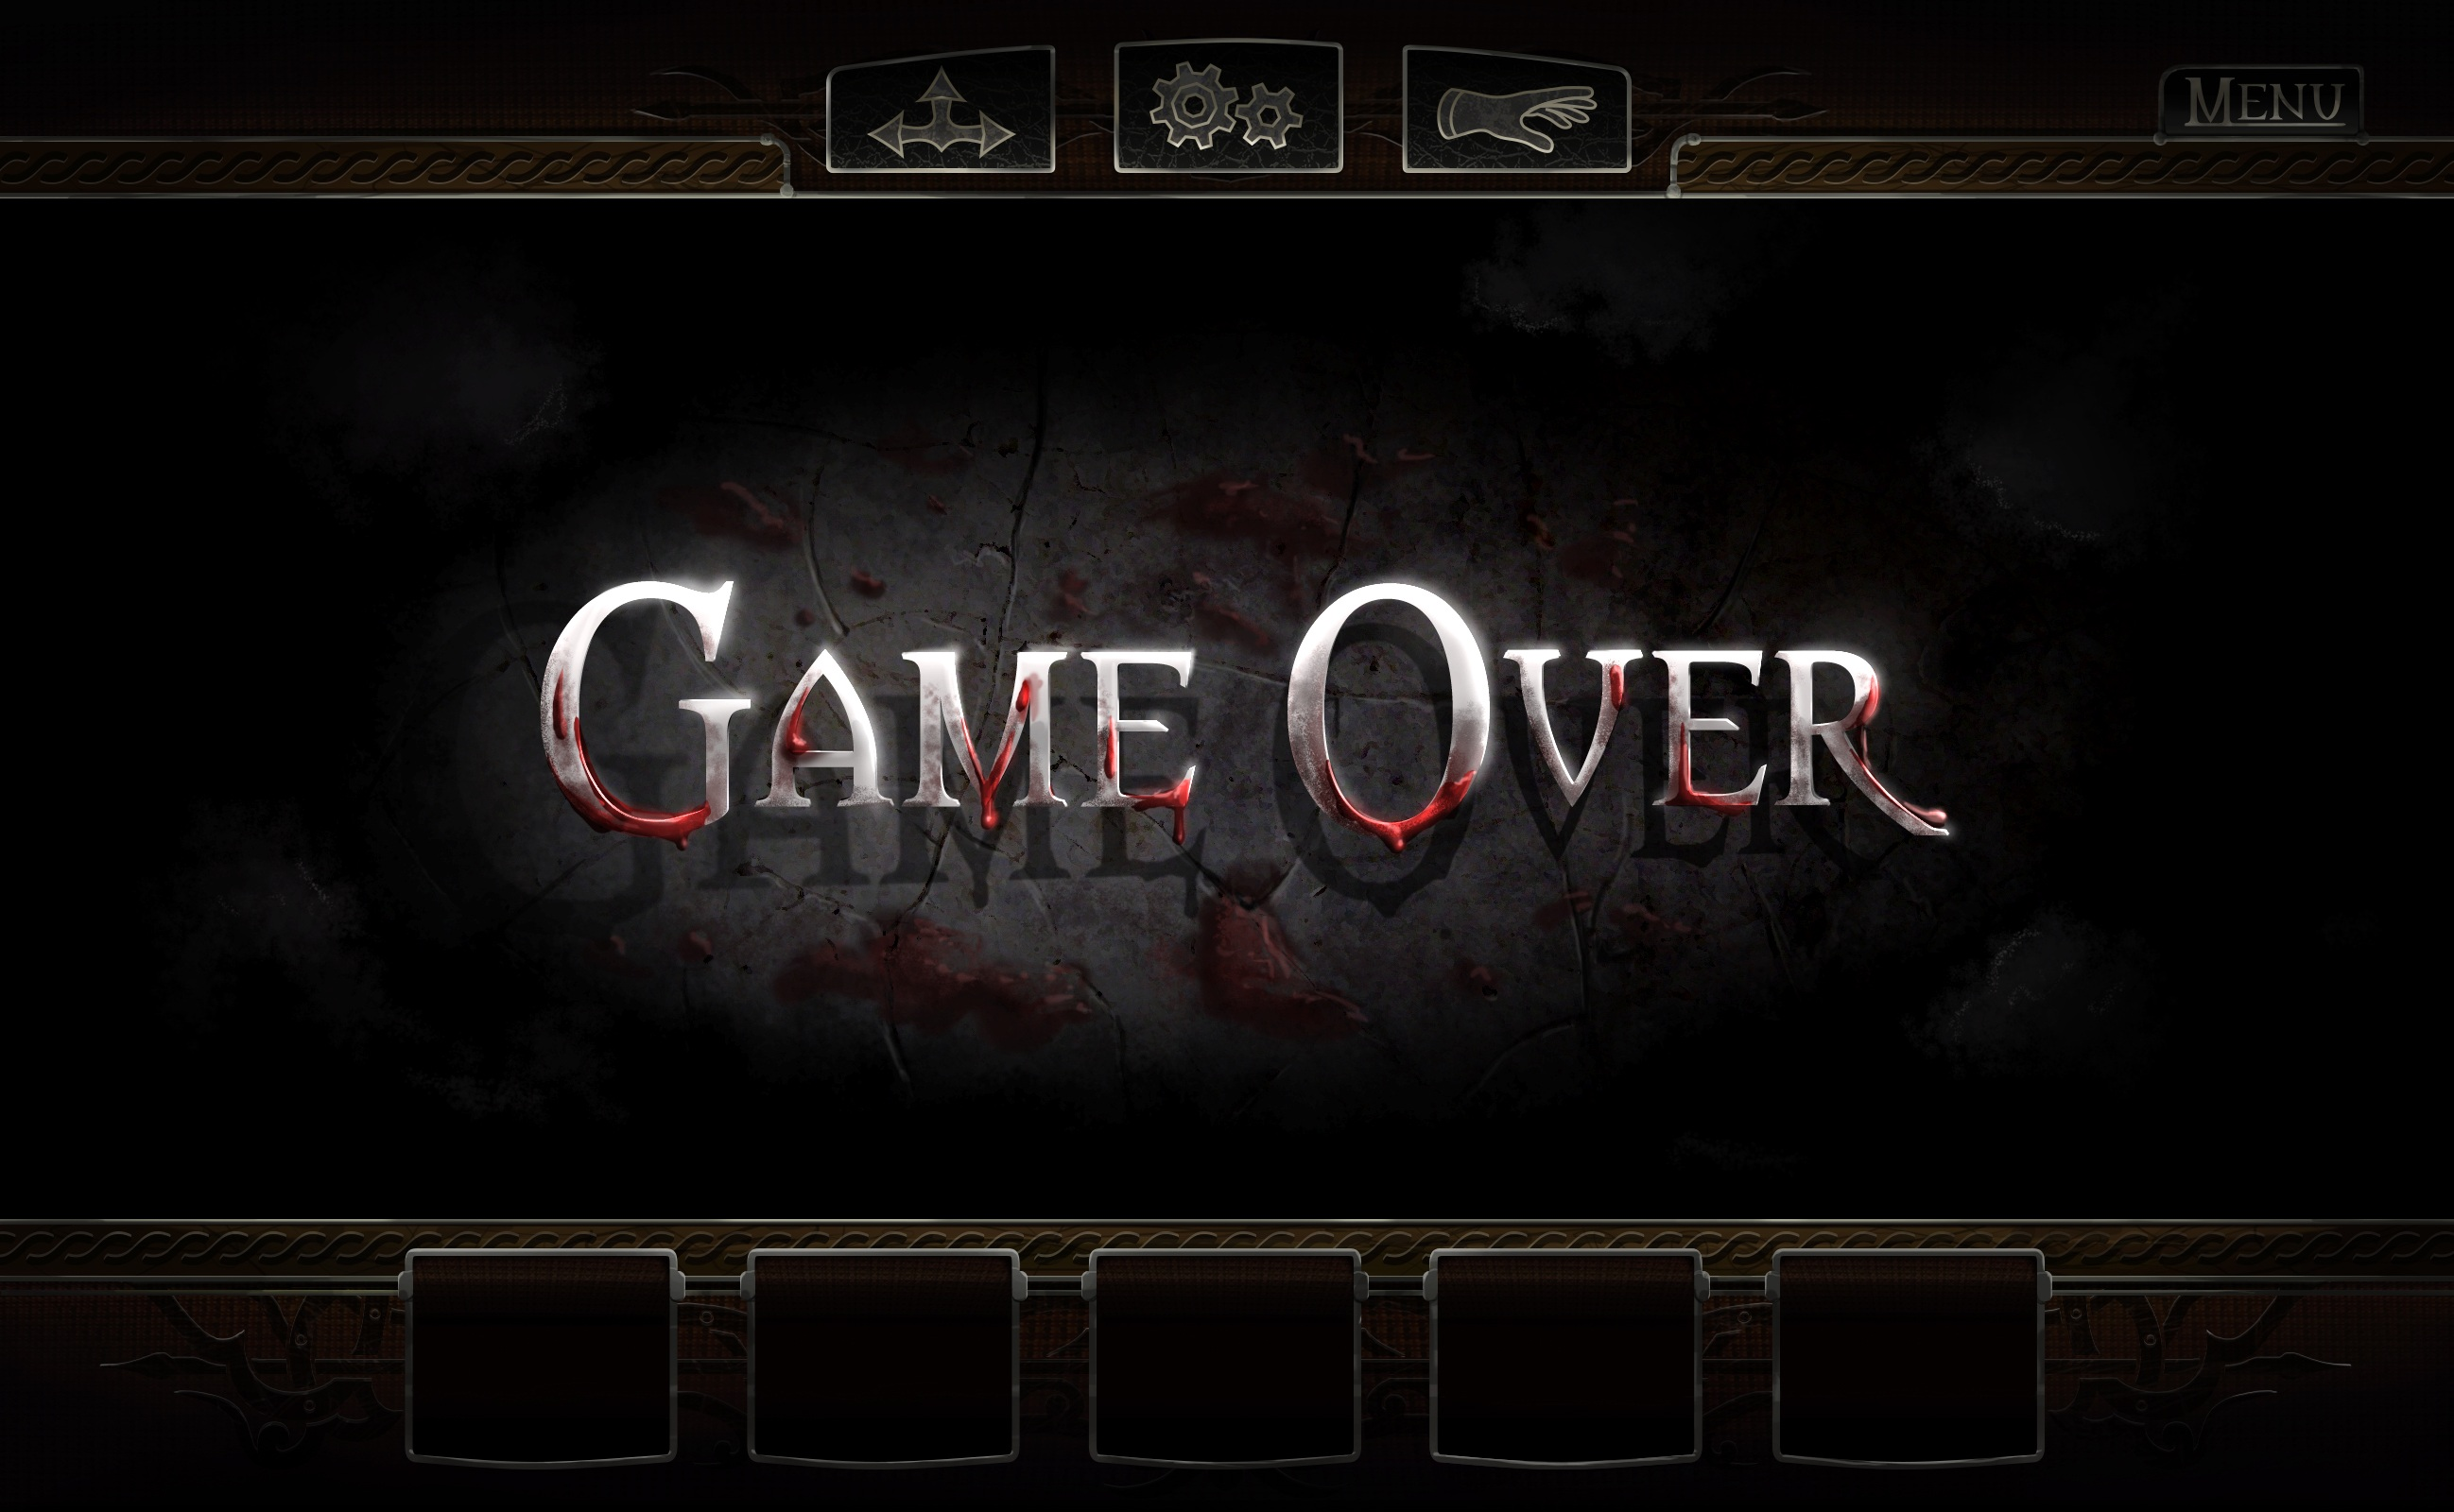 Minions Hd Wallpapers 1080p Game Over Screen Image Castle Dracula Indie Db